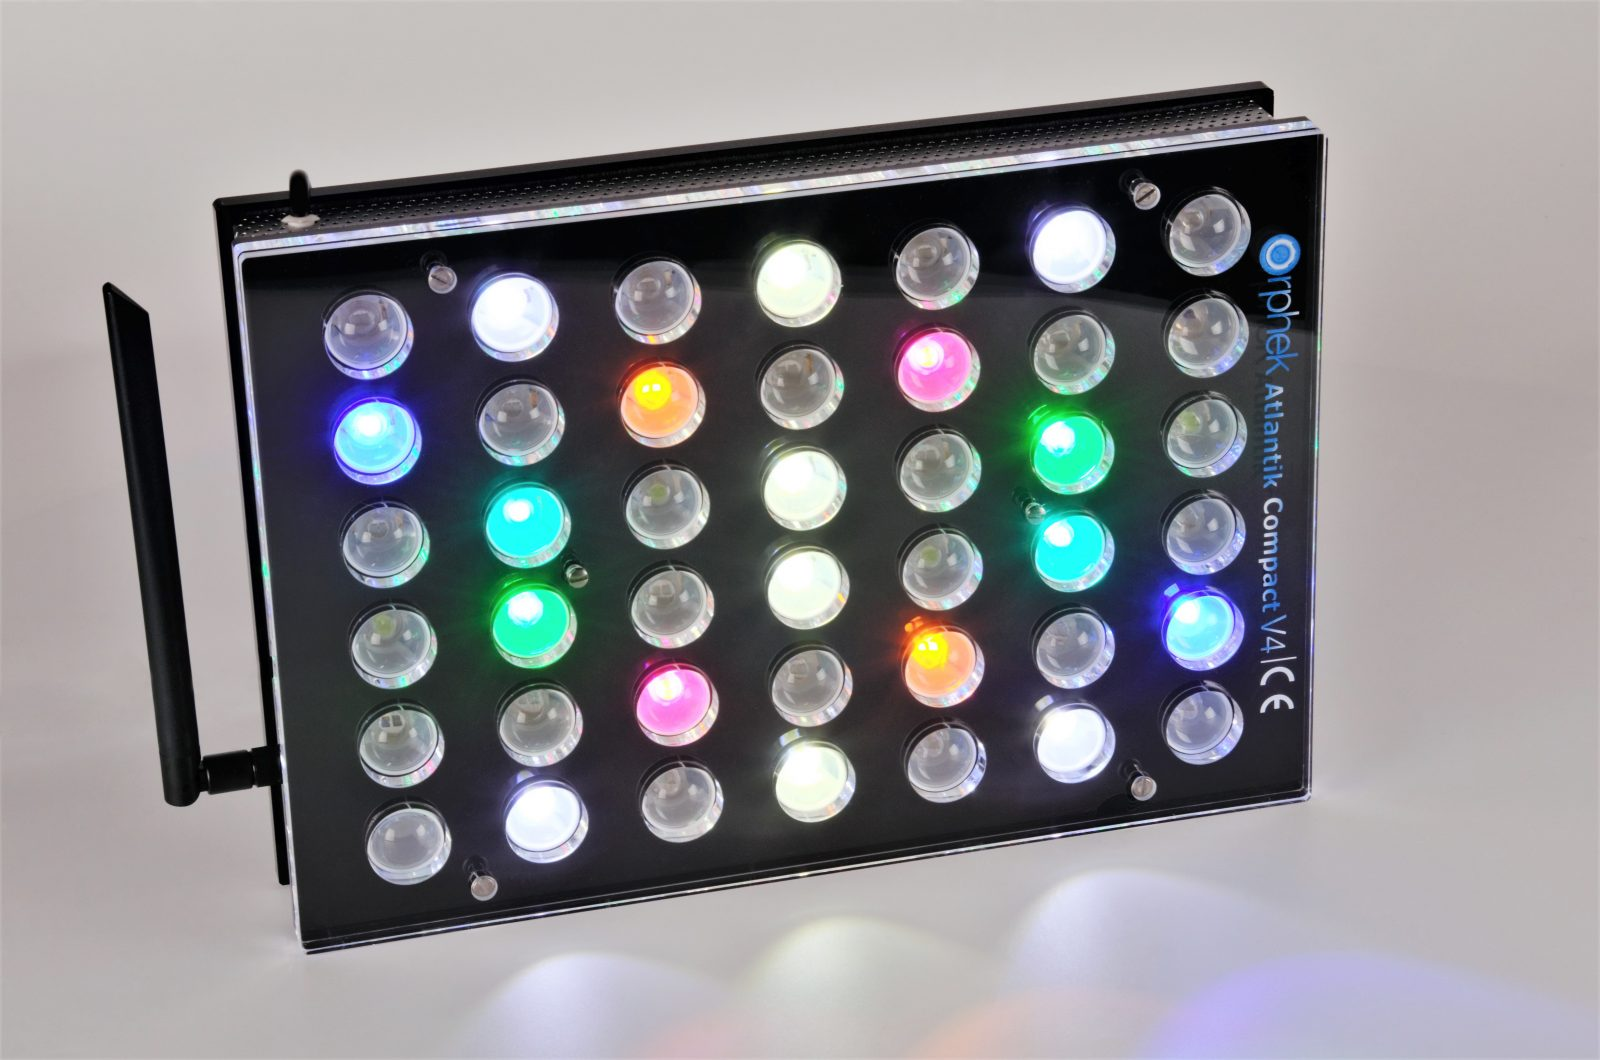 Orphek-Aquarium-LED-Lighting-Atlantik -Compact-V4-lys -kanalen 1 + 4